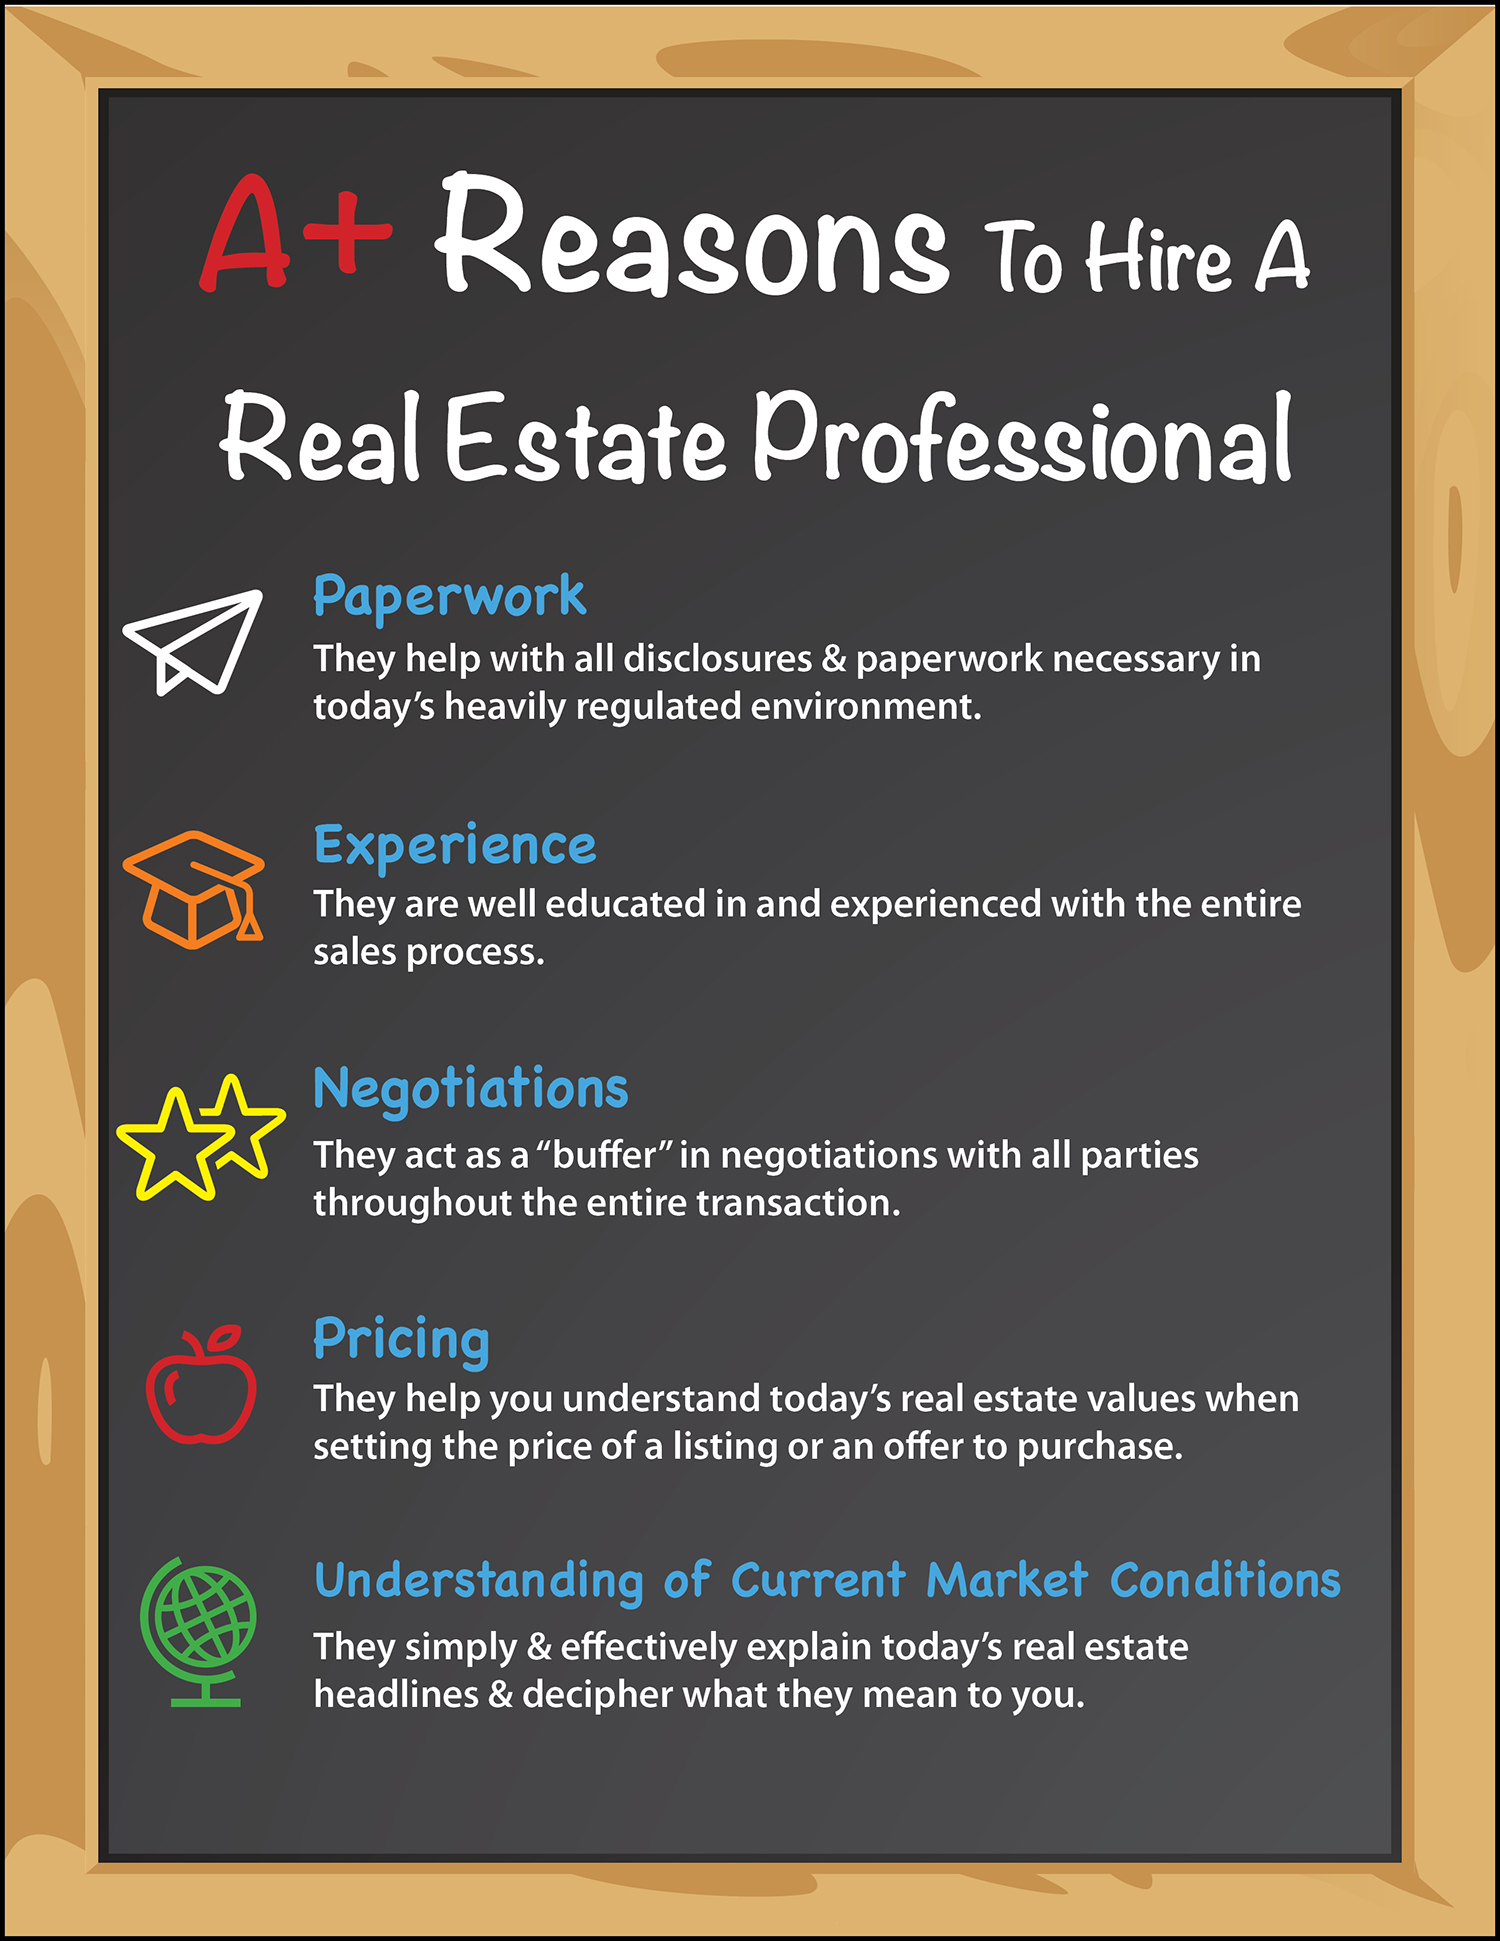 Top 5 A+ Reasons to Hire a Real Estate Pro [INFOGRAPHIC]   MyKCM